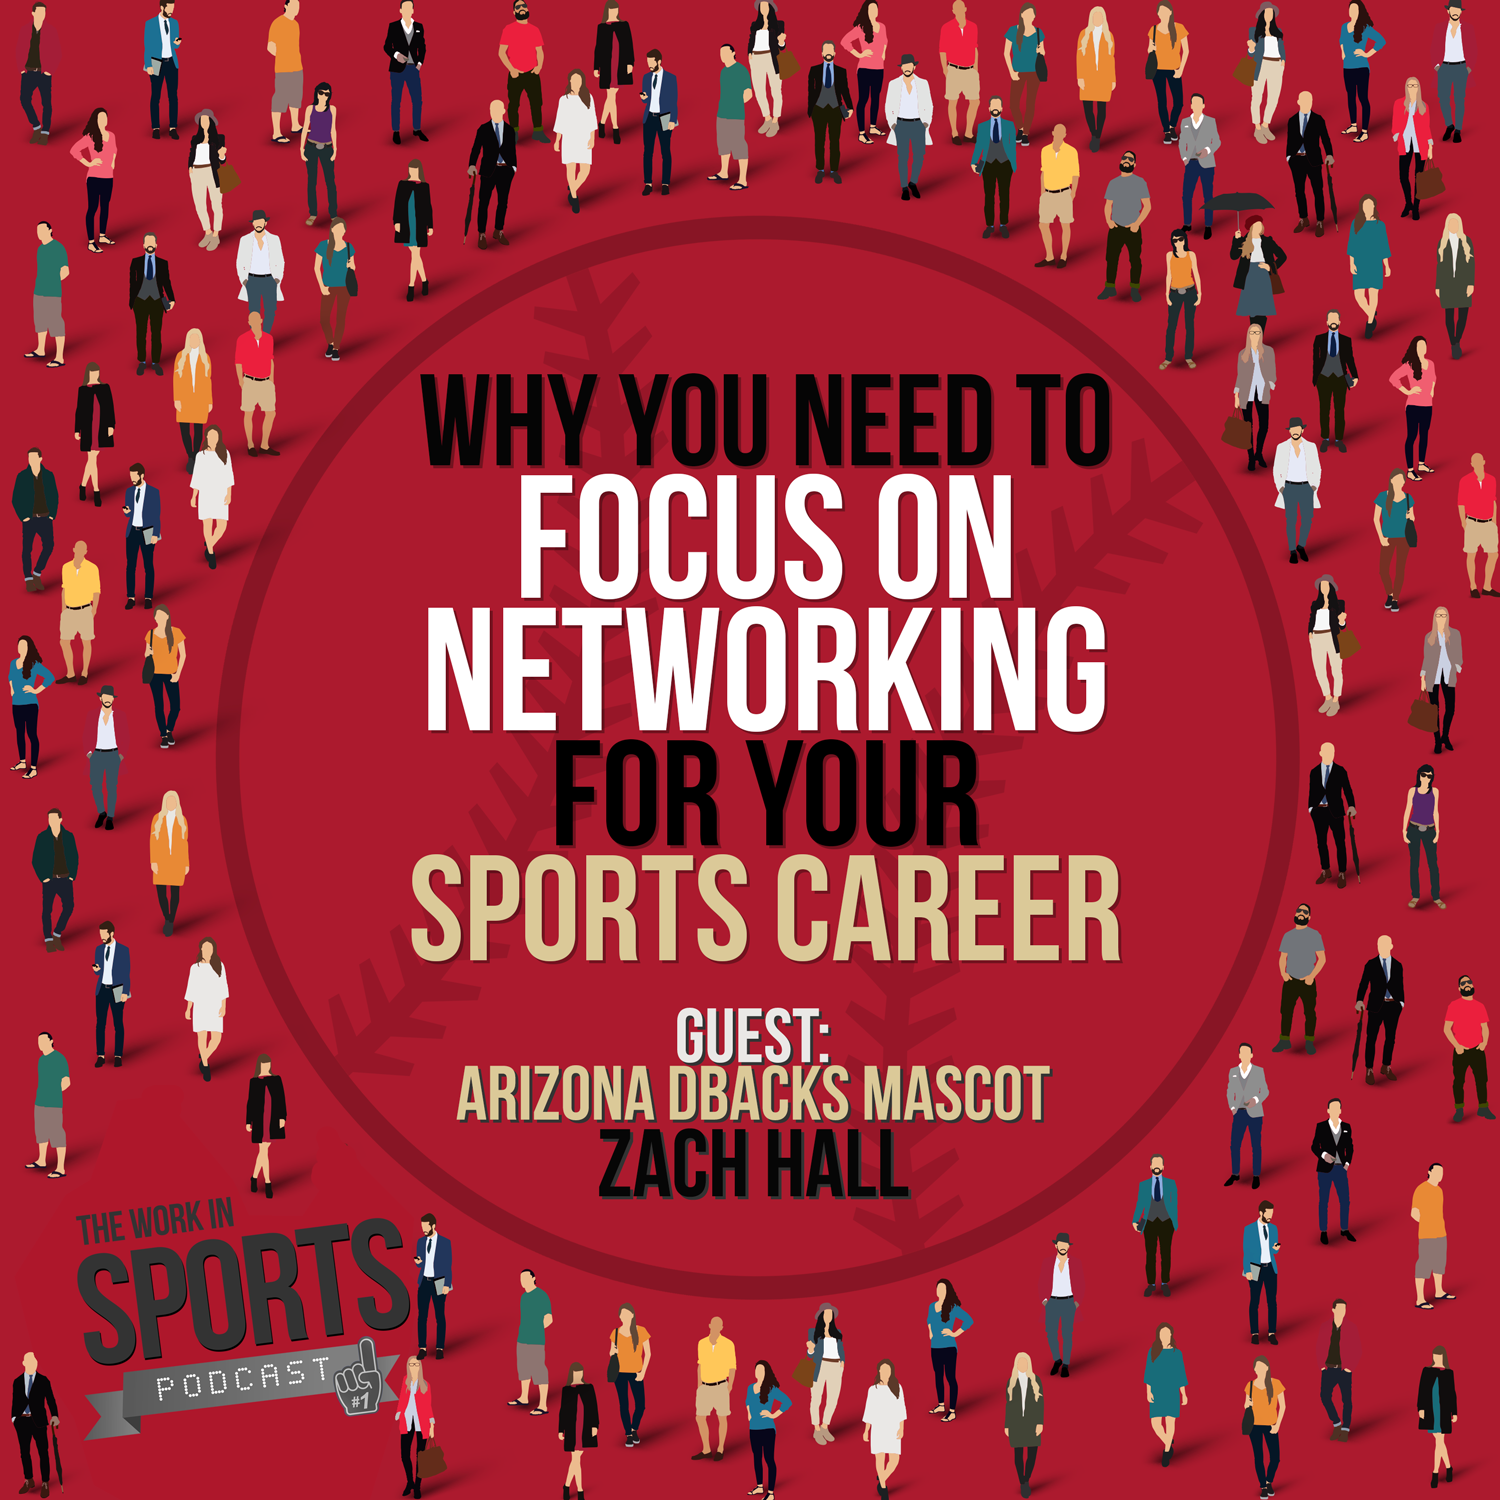 focus on networking for your sports career